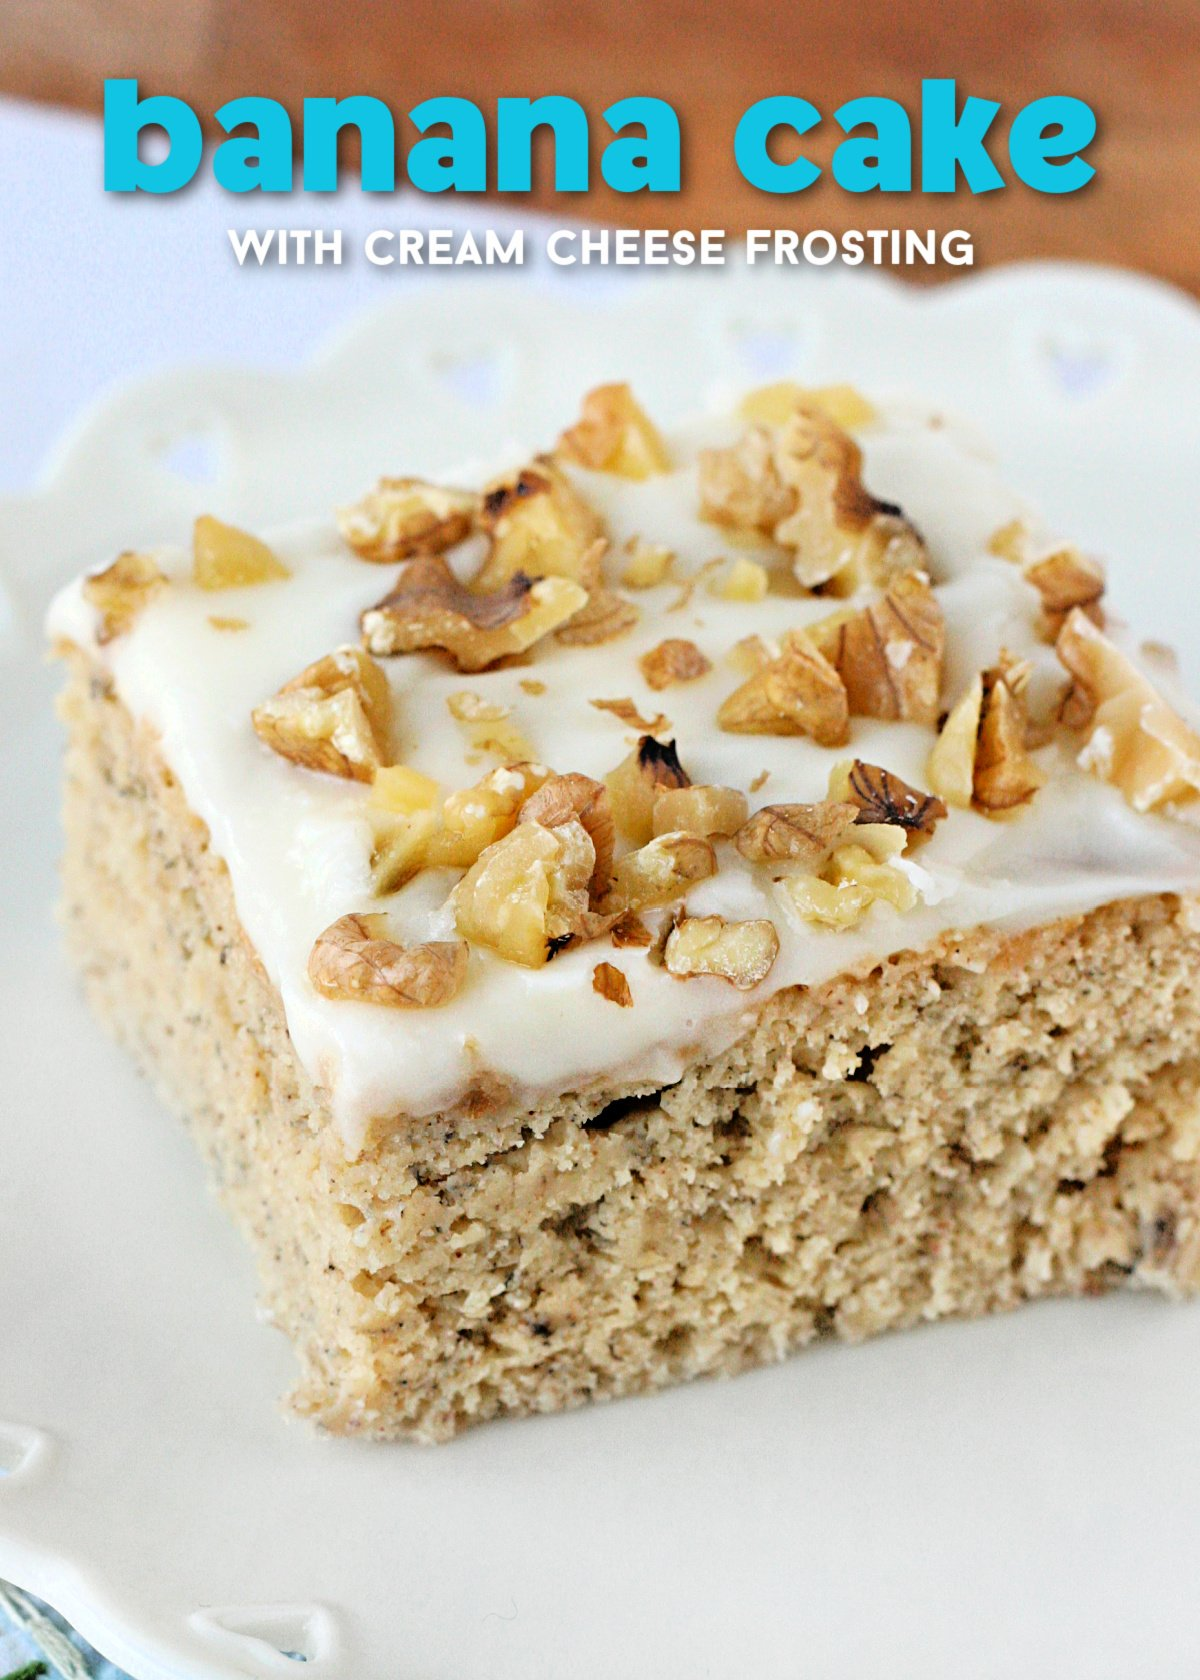 piece of banana cake with cream cheese frosting and walnuts on top sitting on white plate with text overlay at top of image.